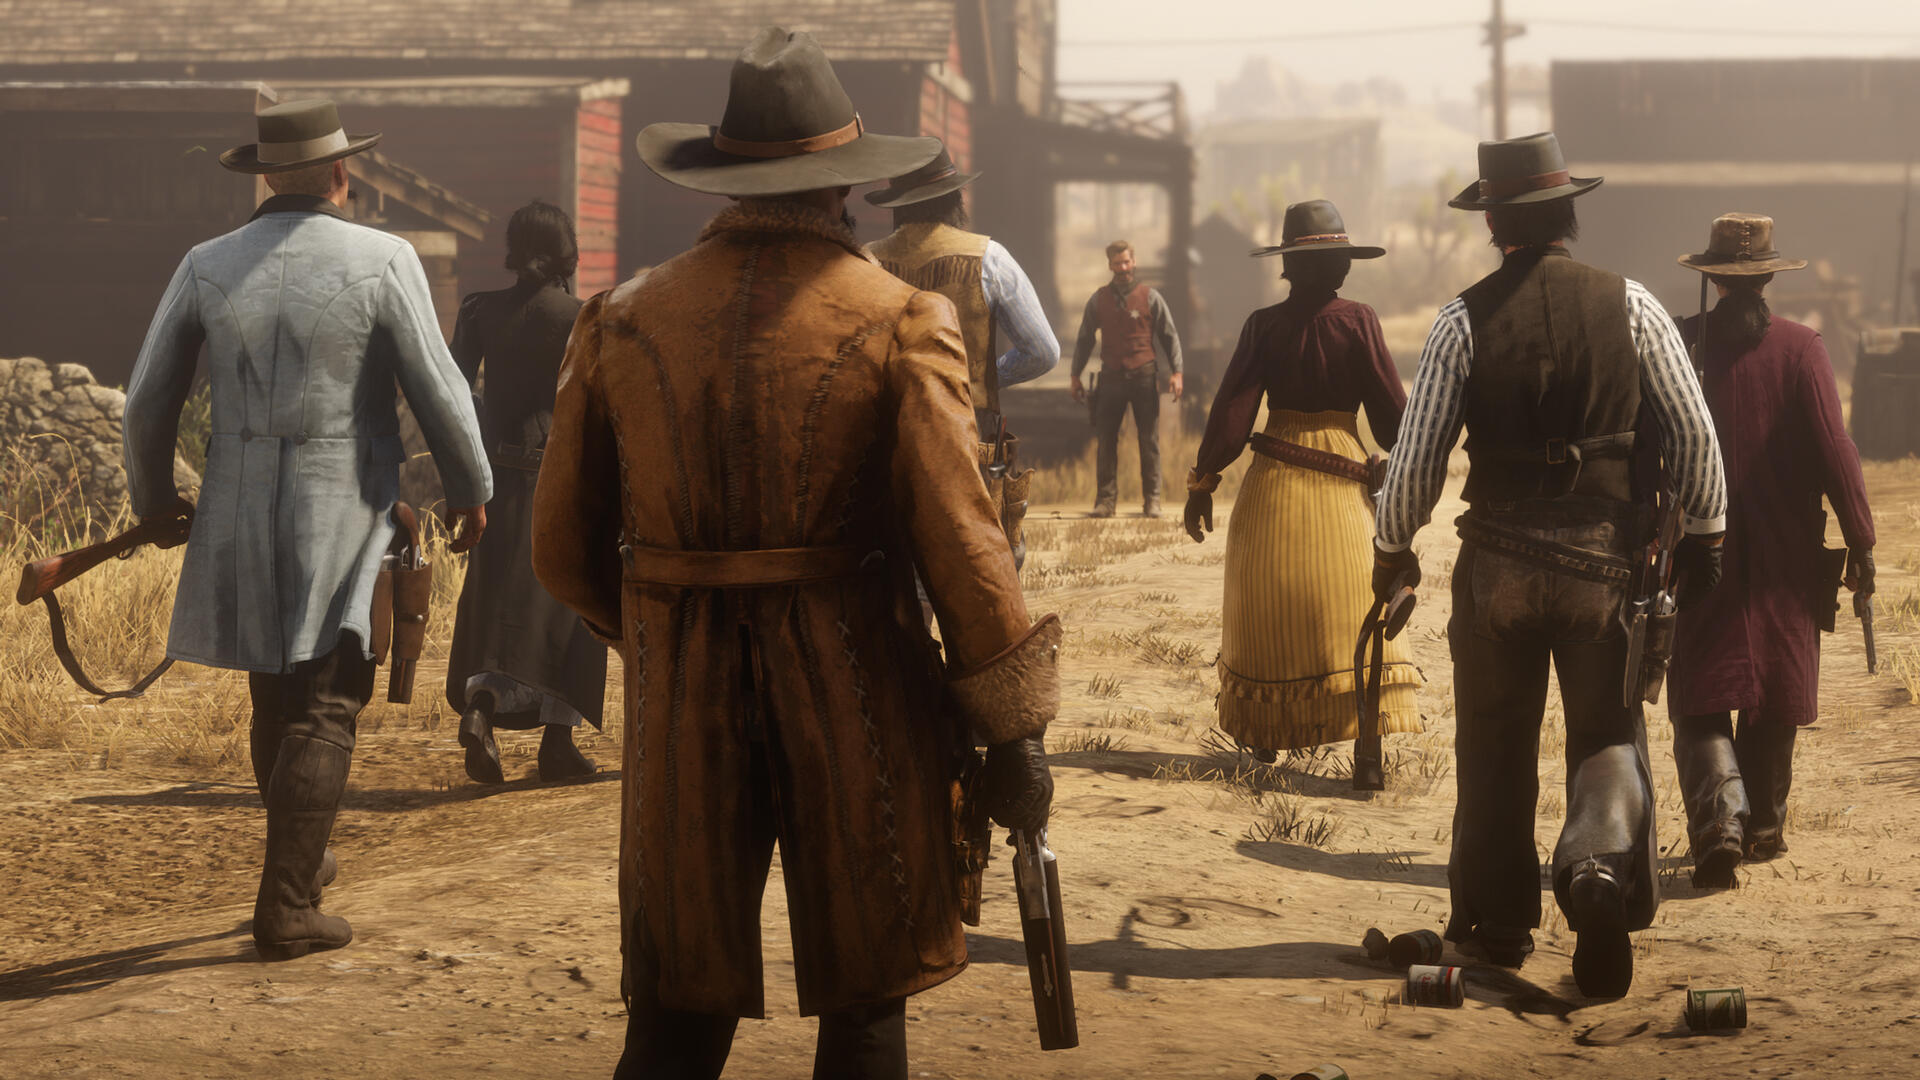 Red Dead Redemption 2 Crosses 23 Million Copies Shipped, 8 Million More than RDR's Lifetime Shipments